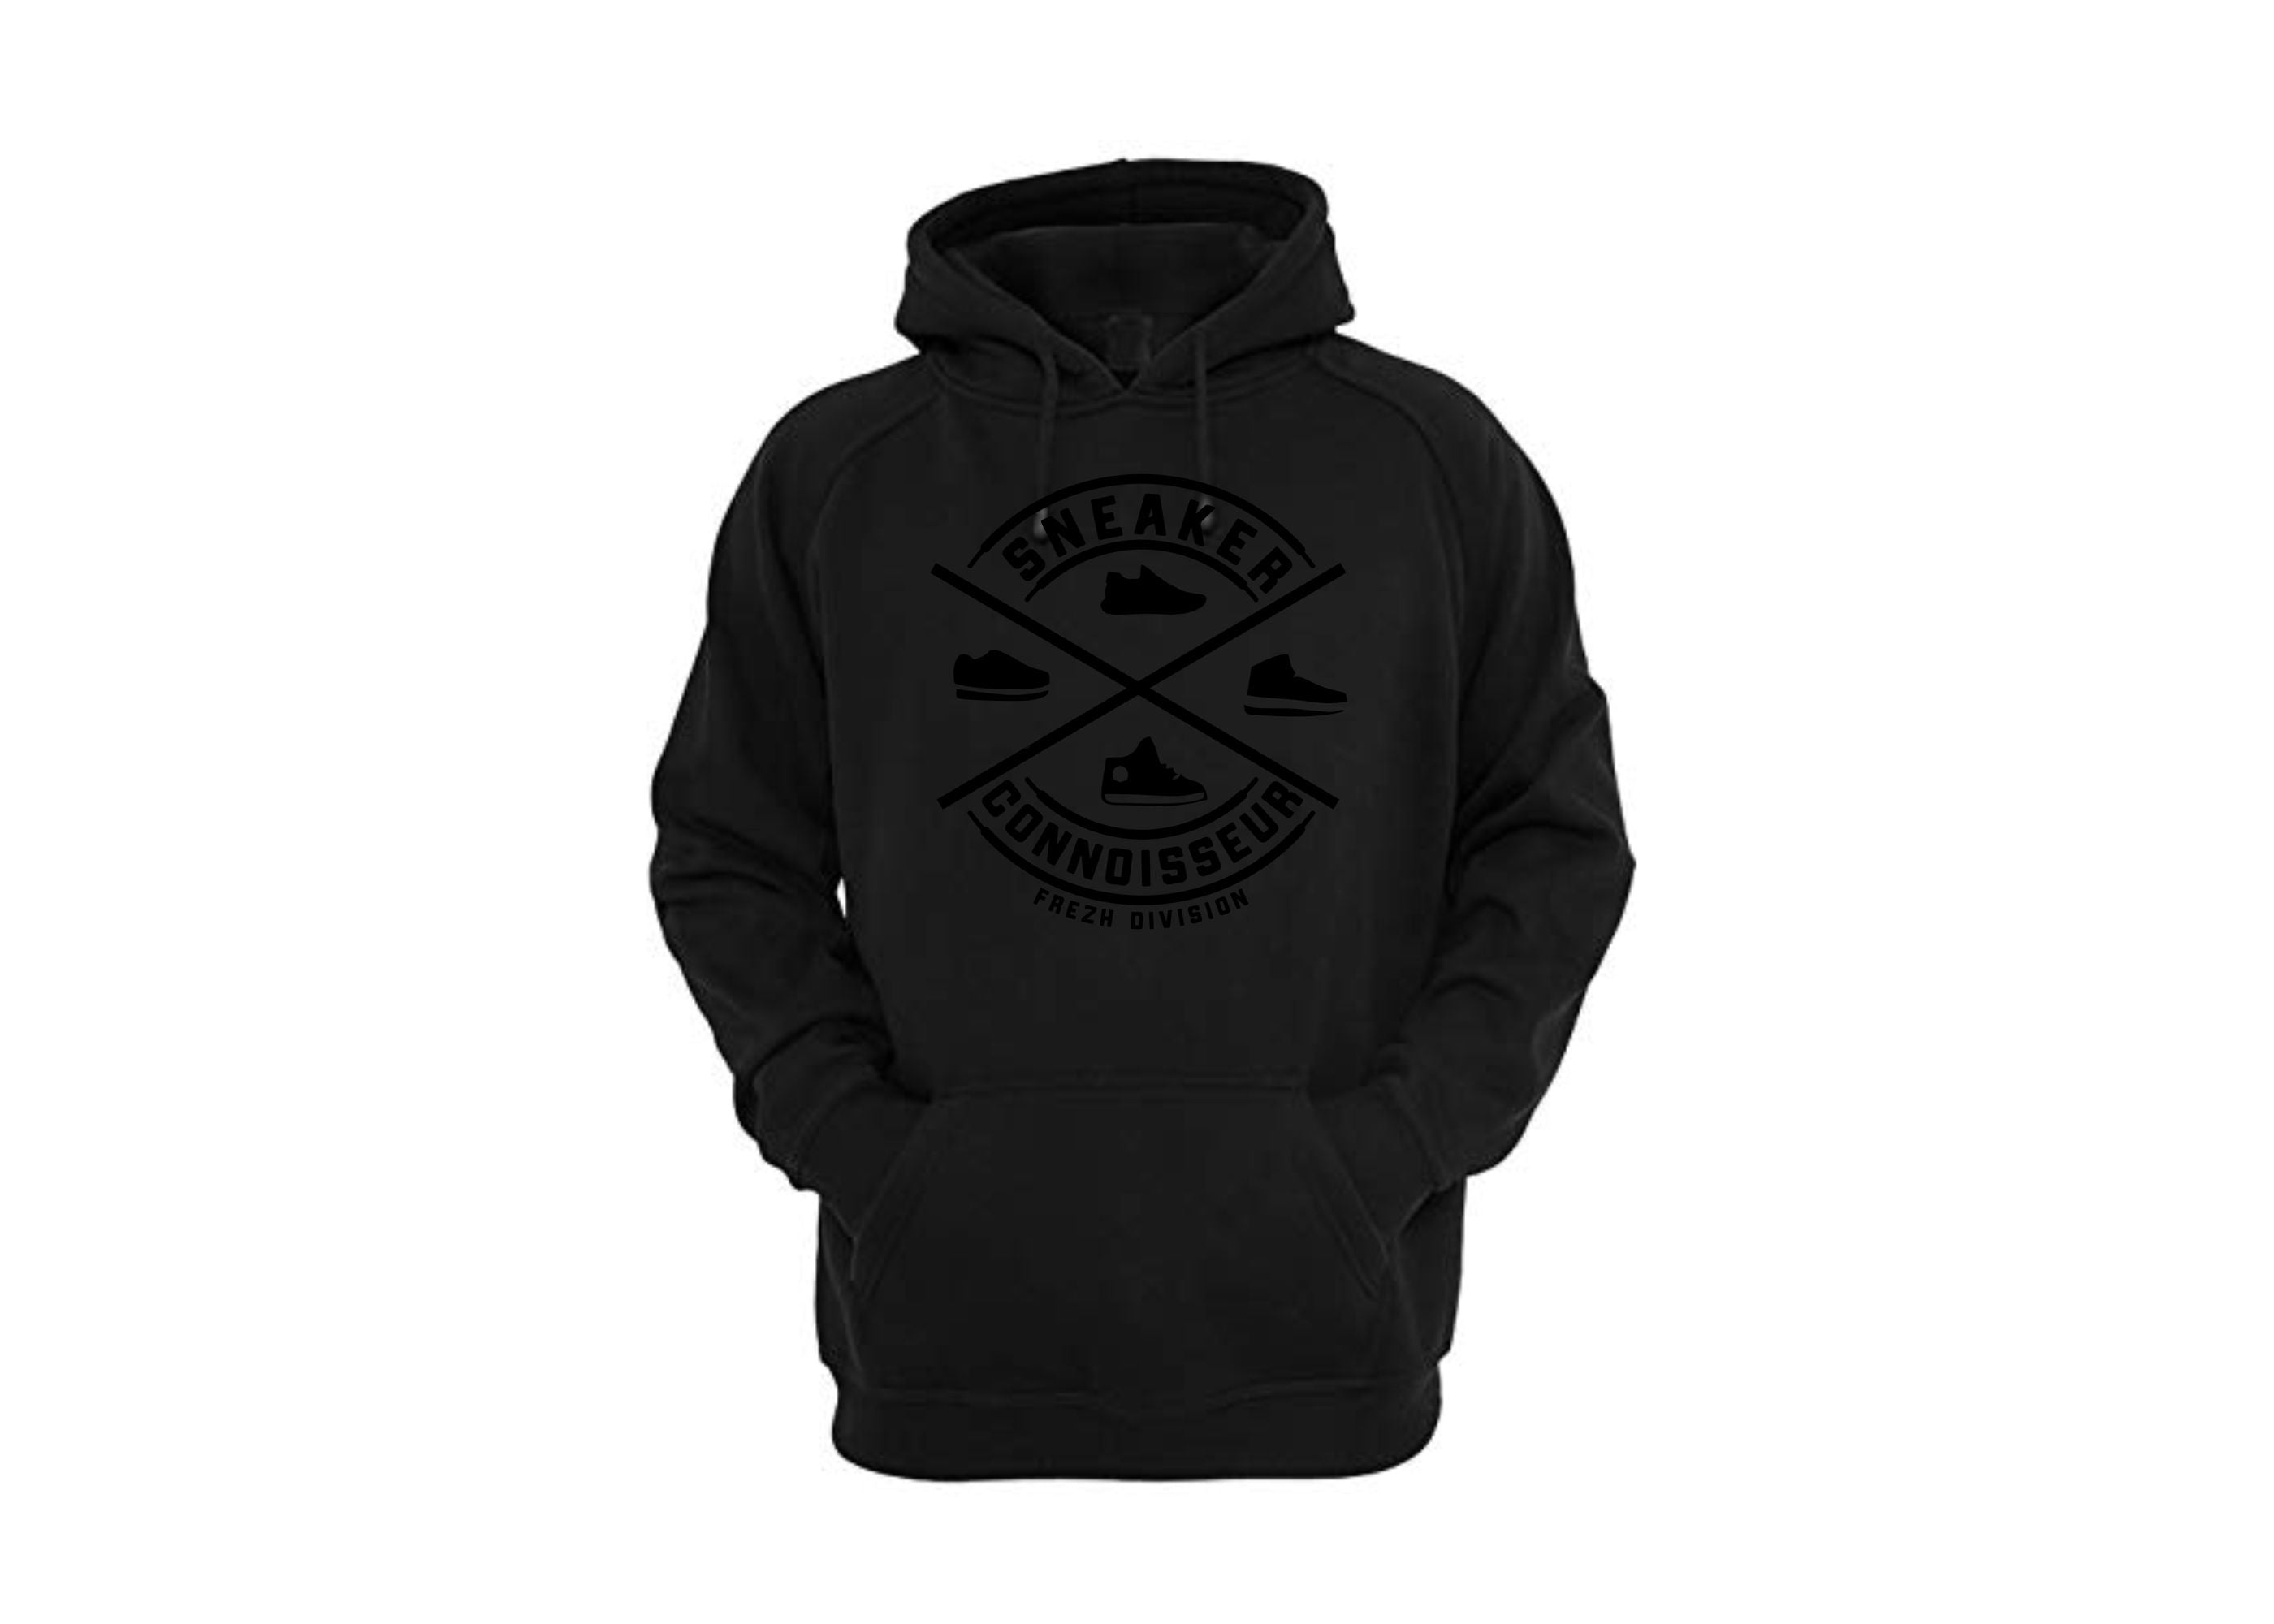 *exclusive* SNEAKER CONNOISSEUR V2 BLACK  on BLACK HOODIE